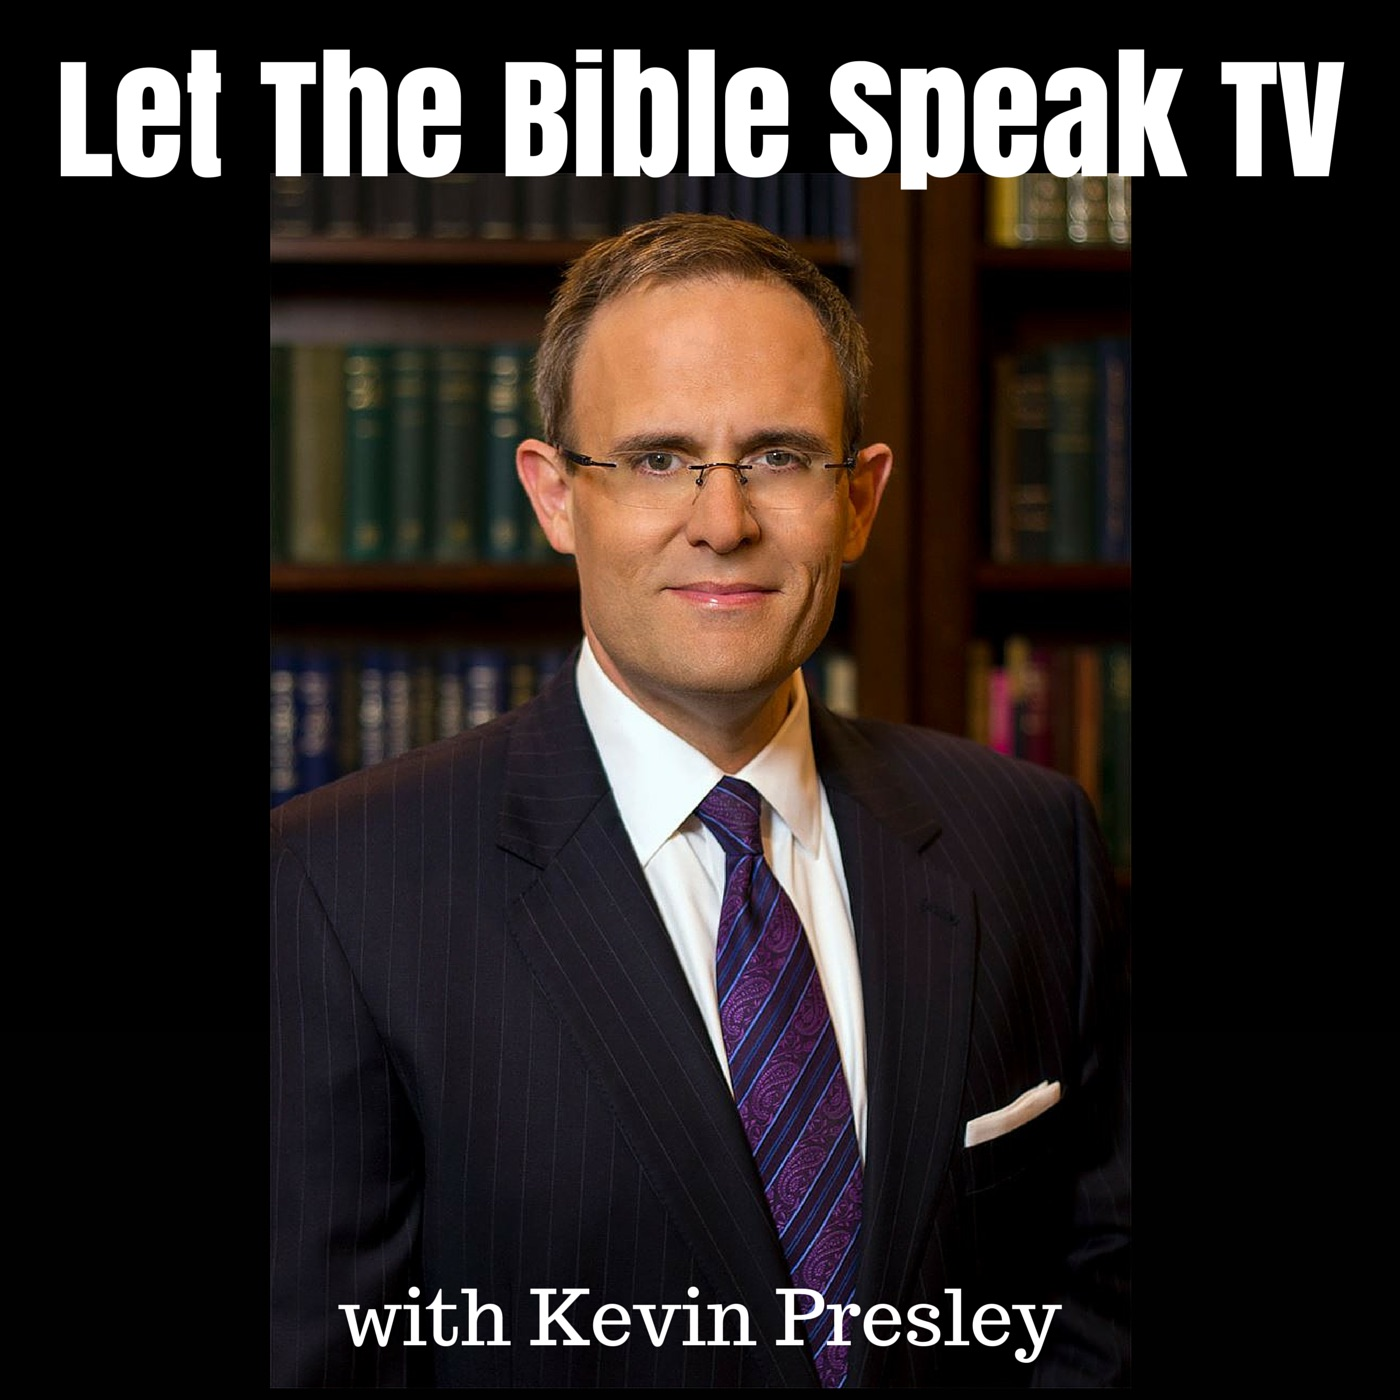 LET THE BIBLE SPEAK with Kevin Presley